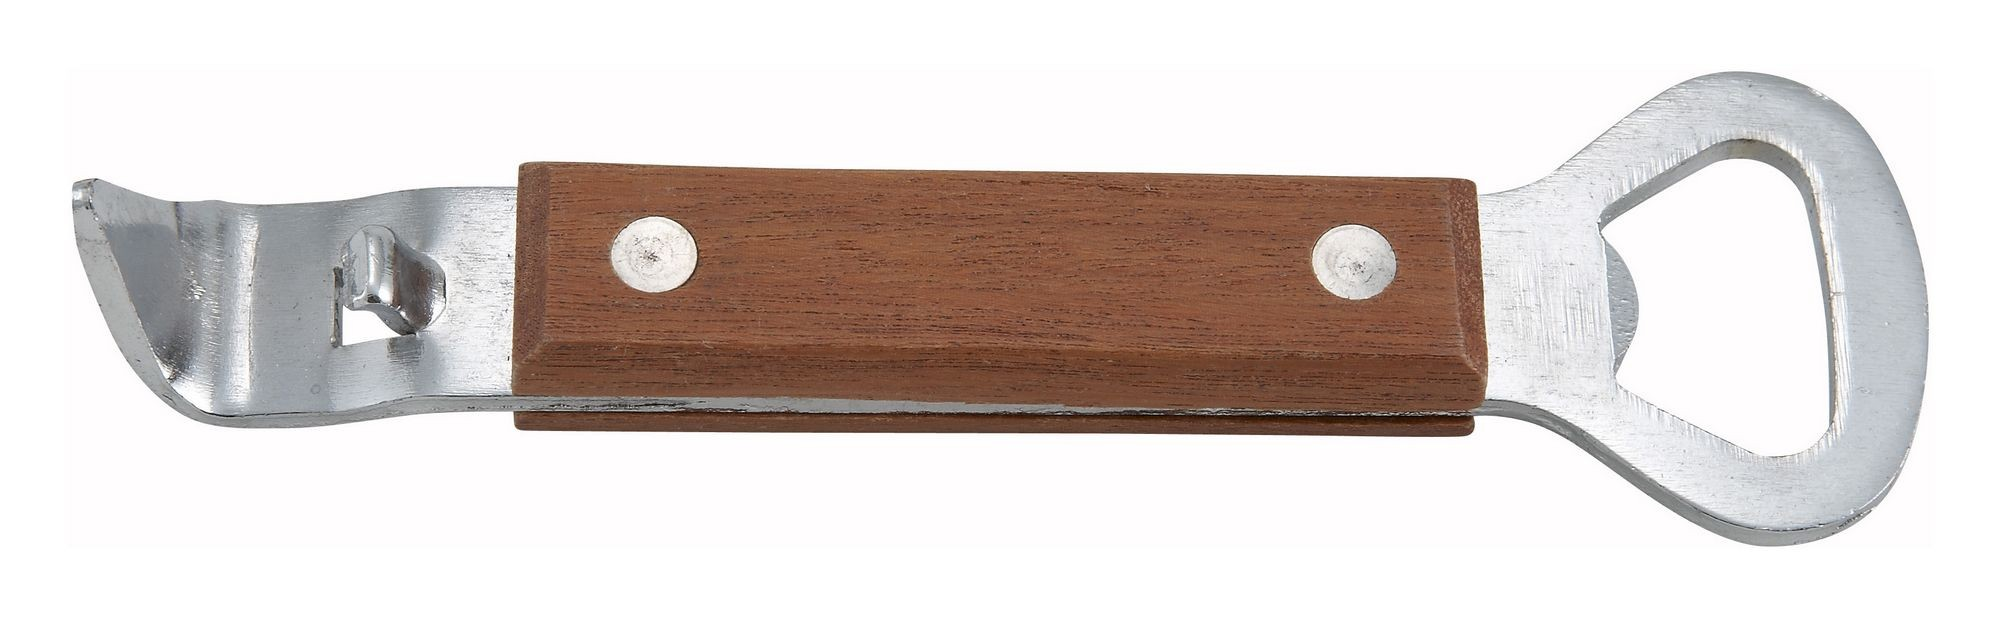 """Winco CO-303 Stainless Steel Can Tapper/Bottle Opener with Wooden Handle 7"""""""